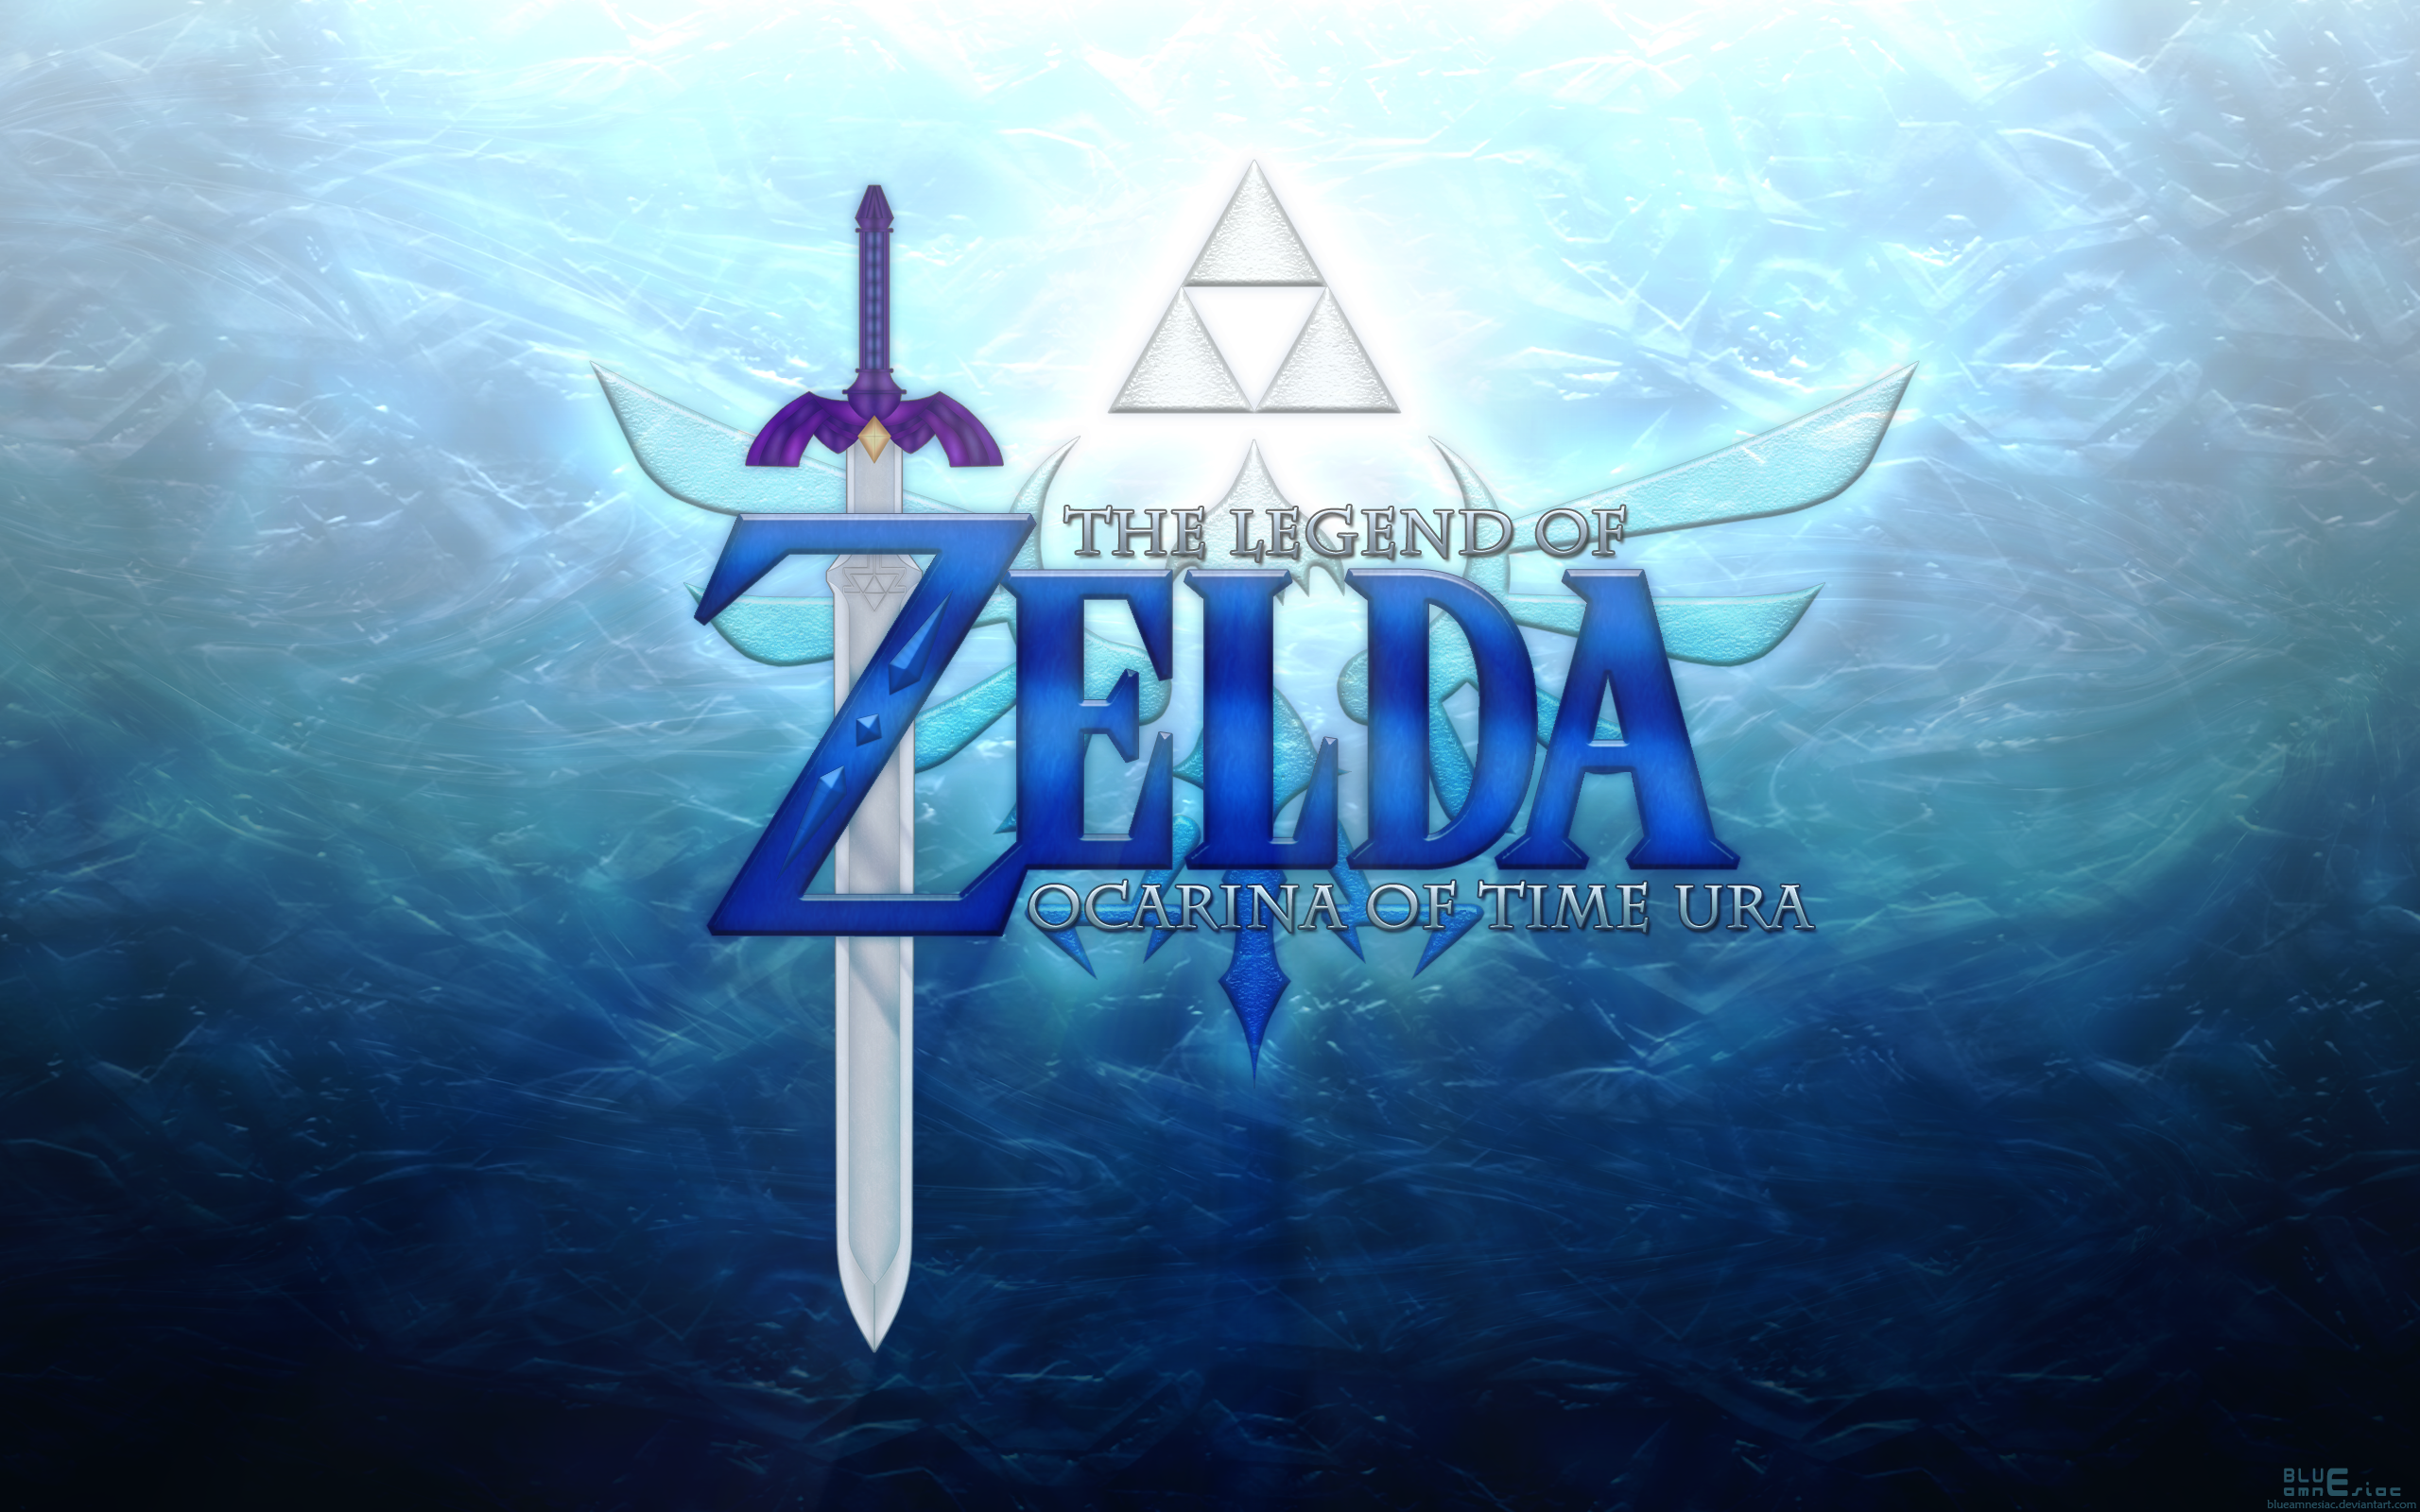 Ocarina Of Time Ura Wallpaper By Blueamnesiac On Deviantart